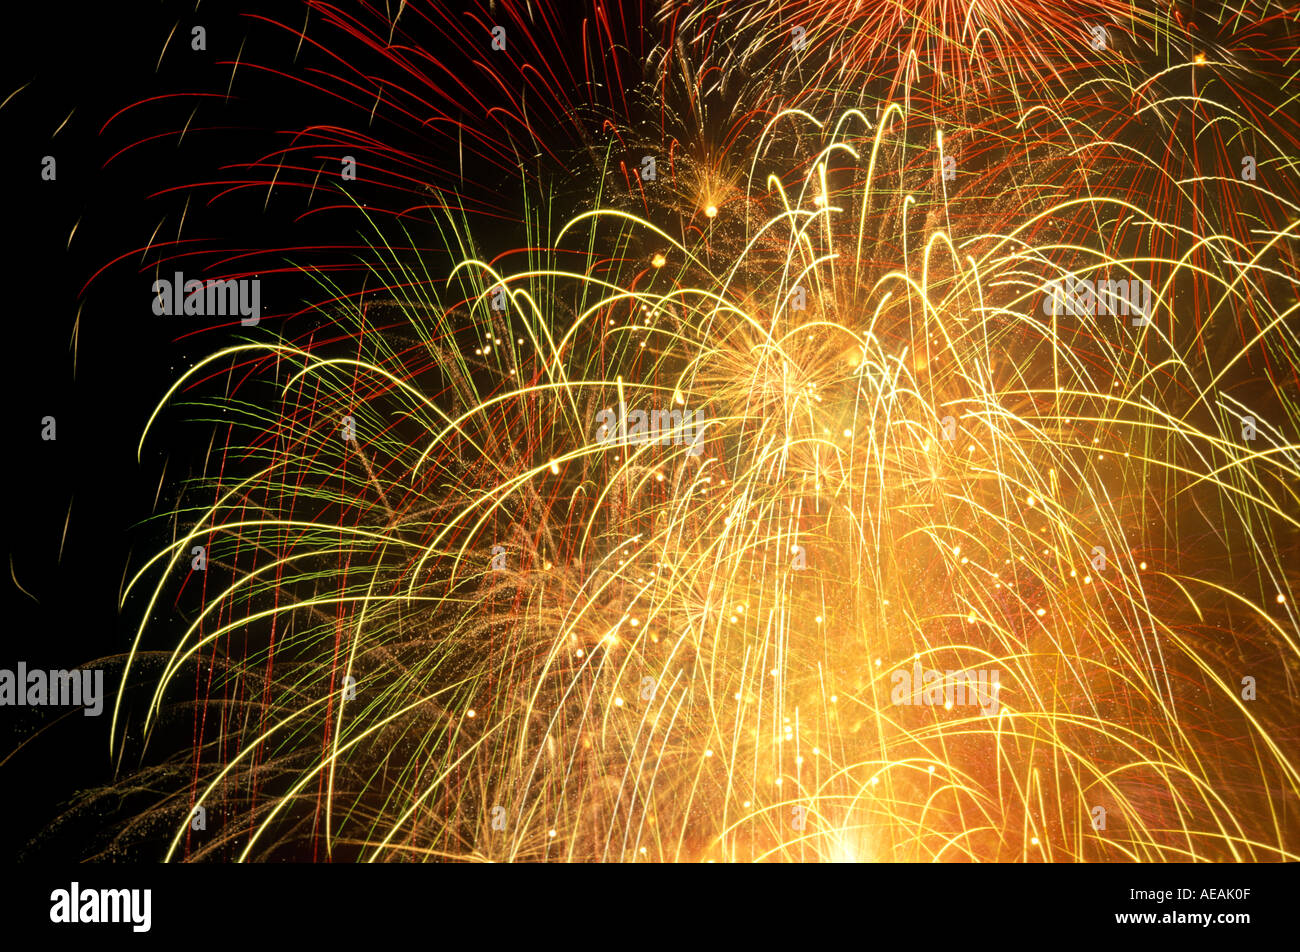 fireworks exploding in black sky close up detail showing many streaks strands explosions - Stock Image